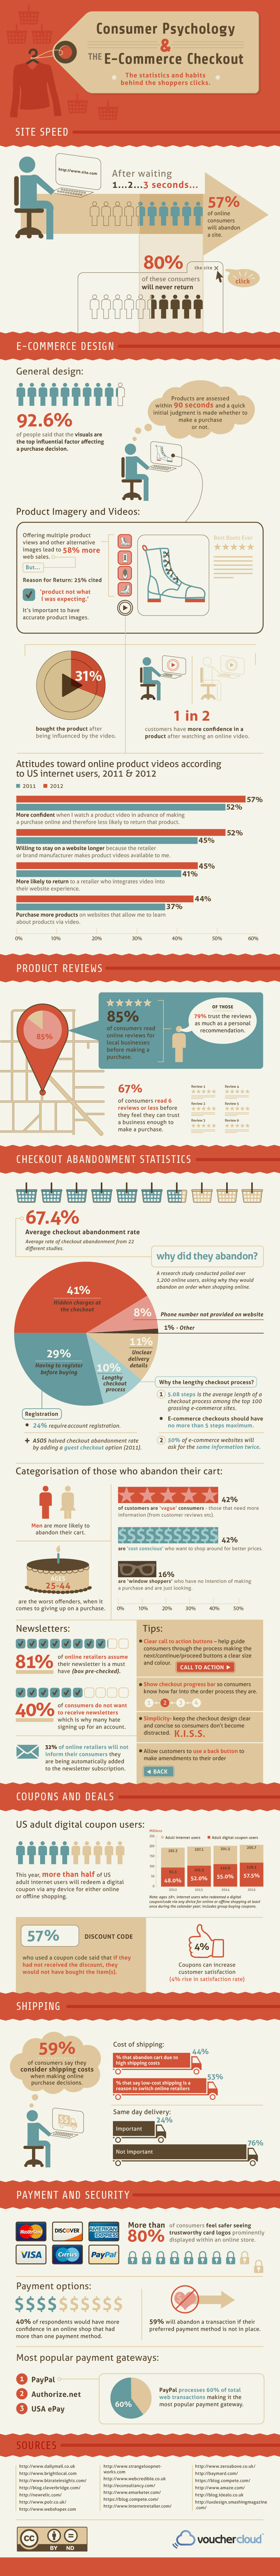 Consumer Psychology and the eCommerce Checkout